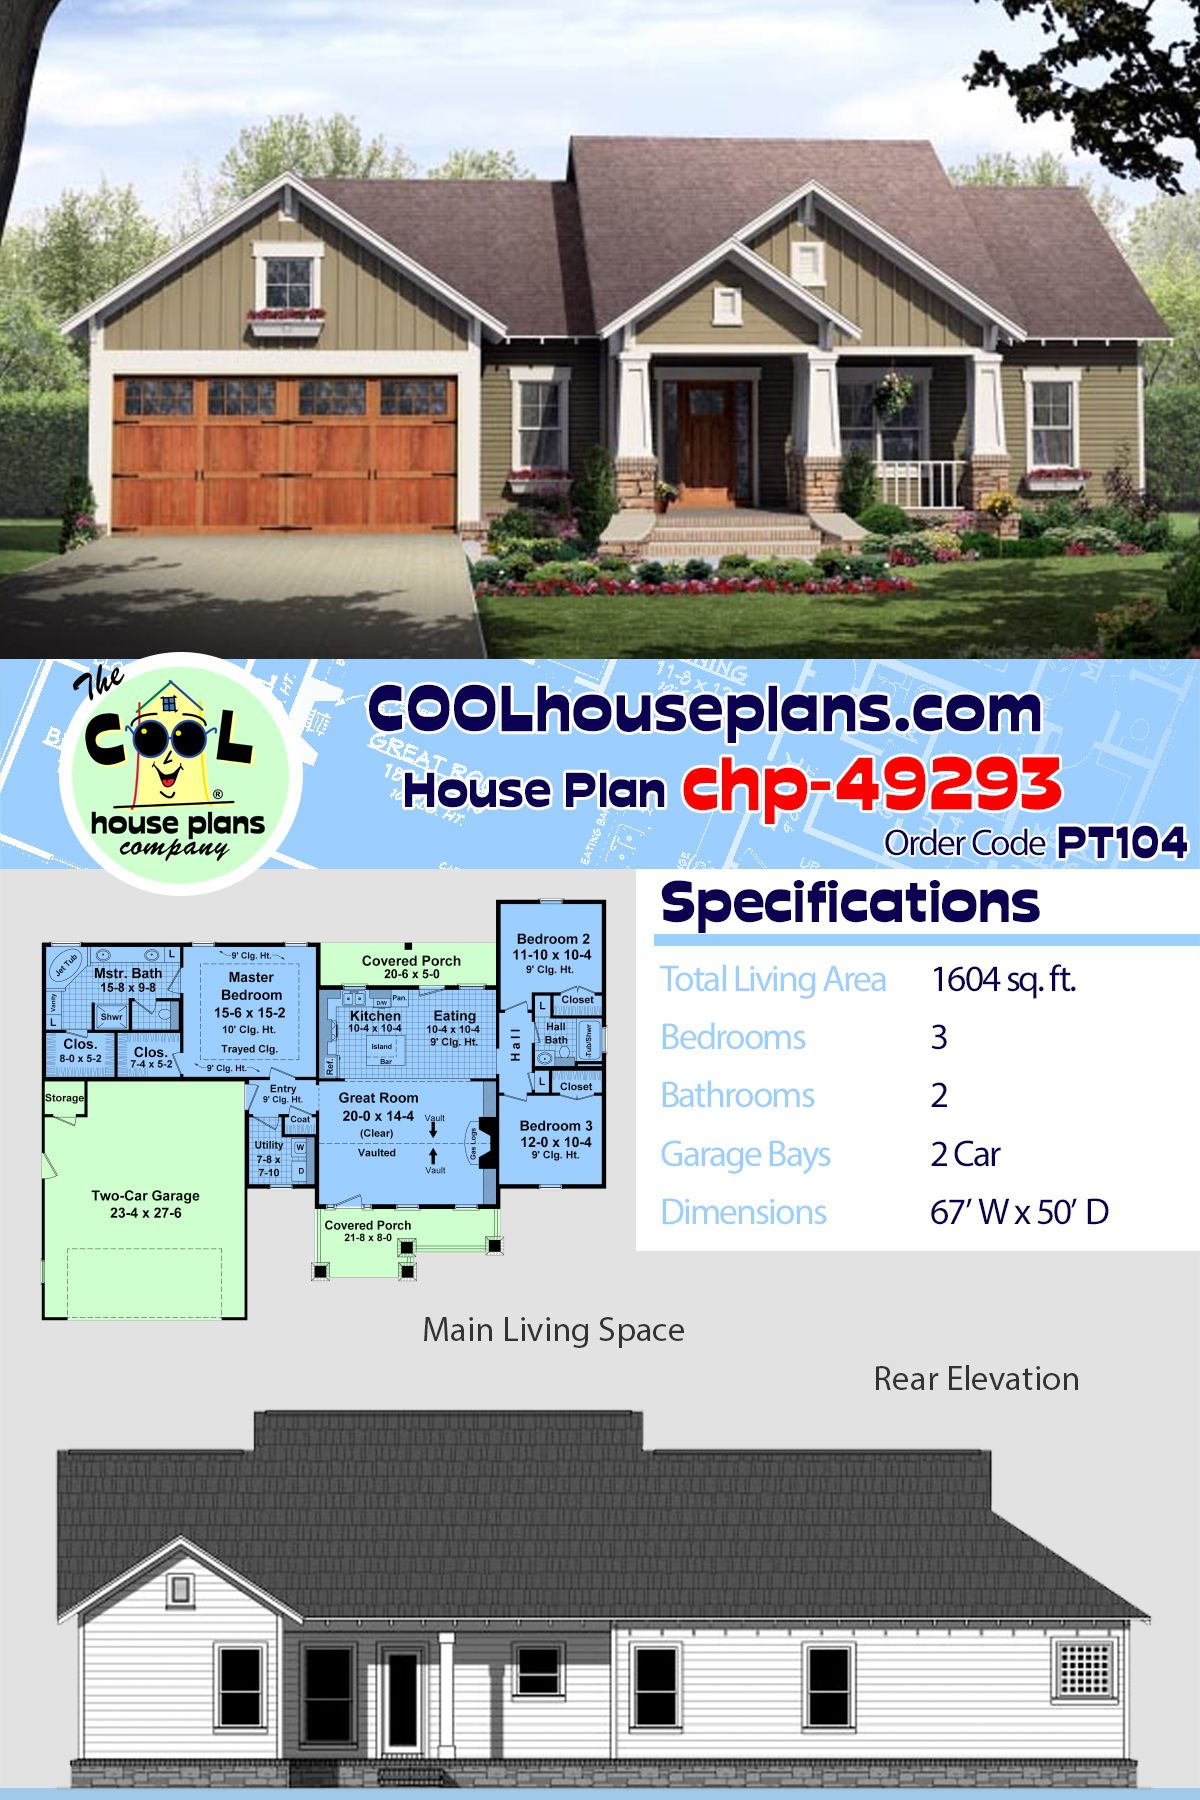 Craftsman Style House Plan 59942 With 3 Bed 2 Bath 2 Car Garage Craftsman House Plans Craftsman Style House Plans Craftsman House